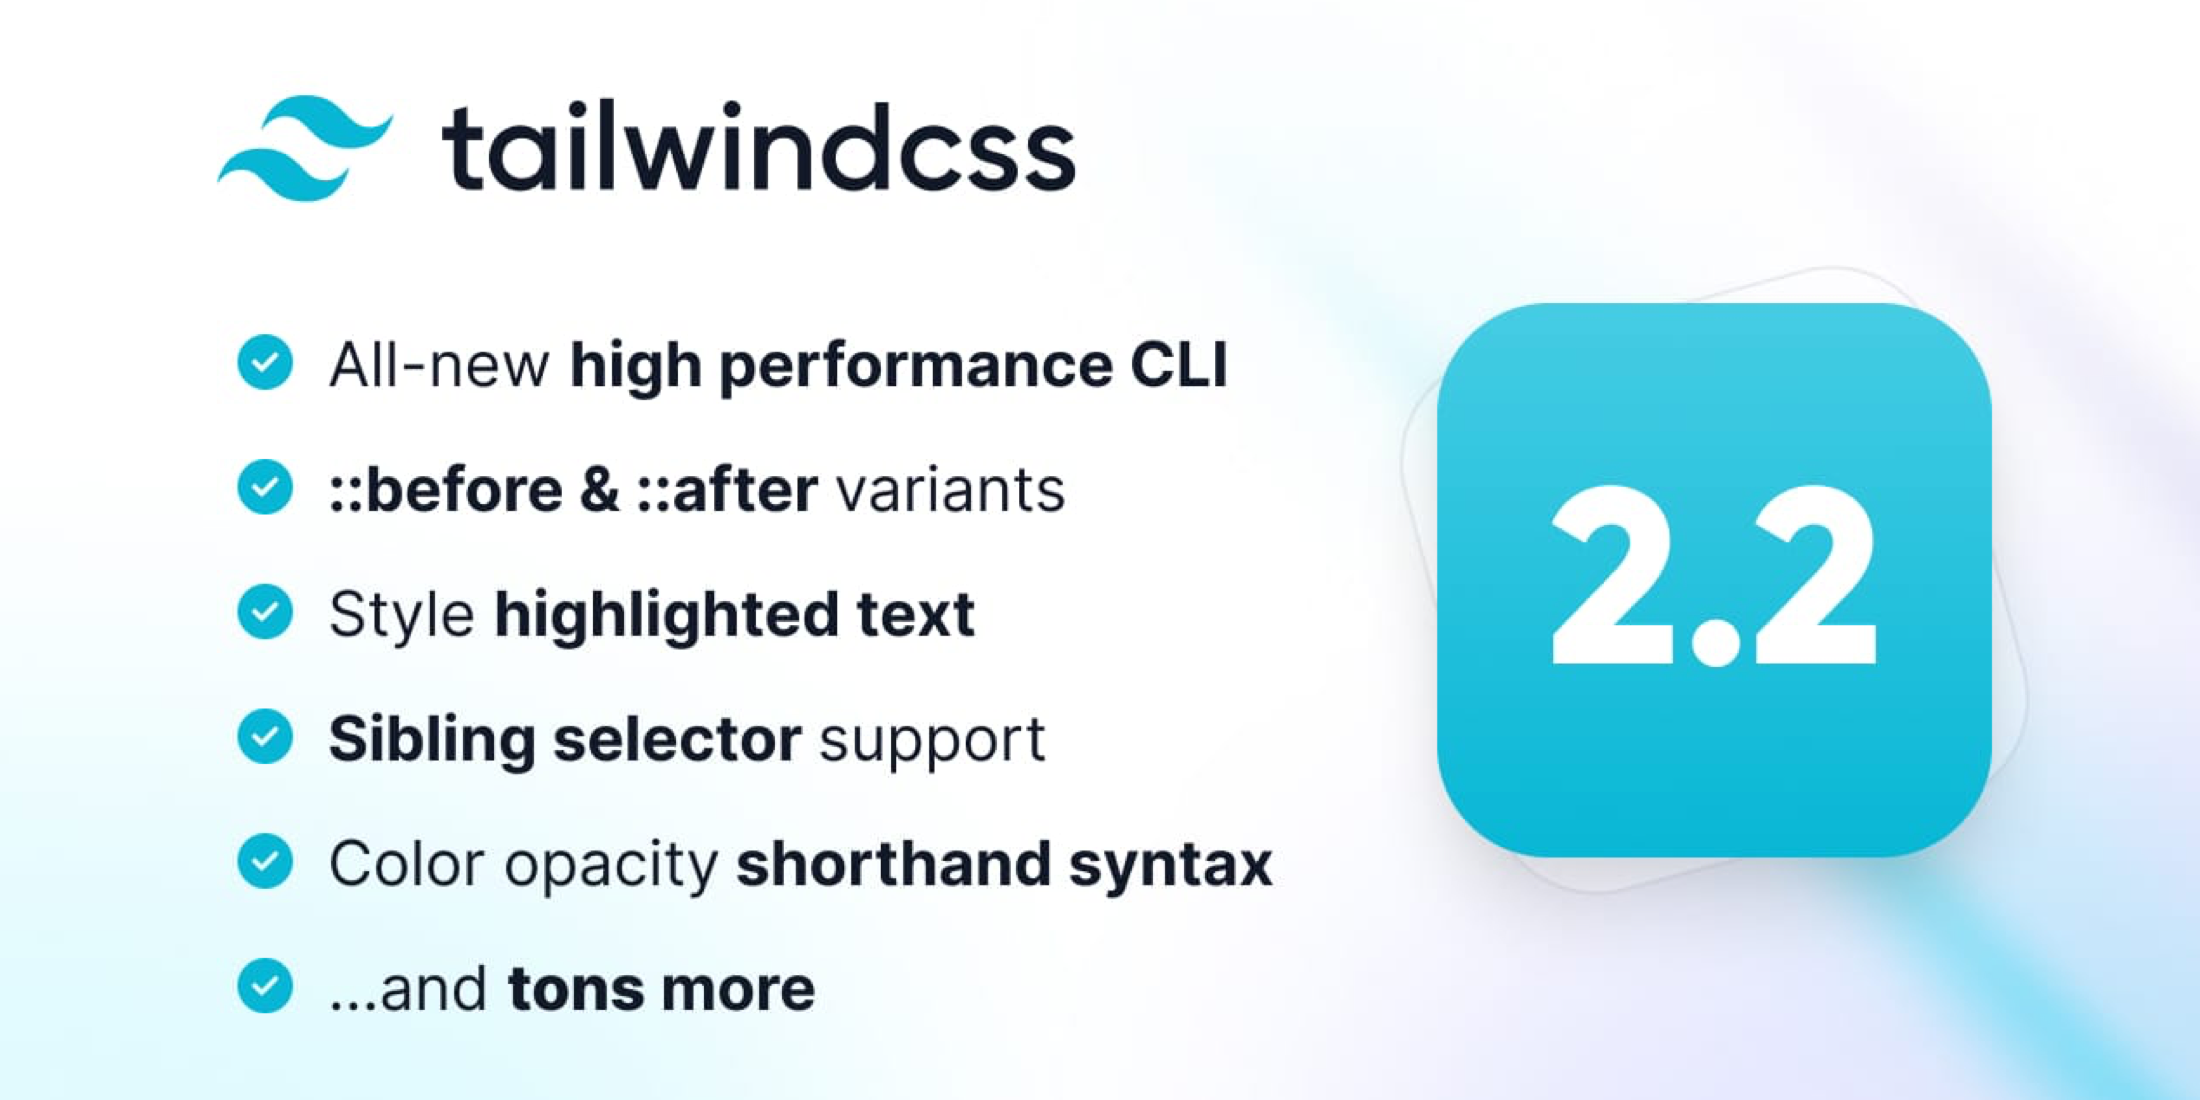 tailwindcss-2-2-featured.png